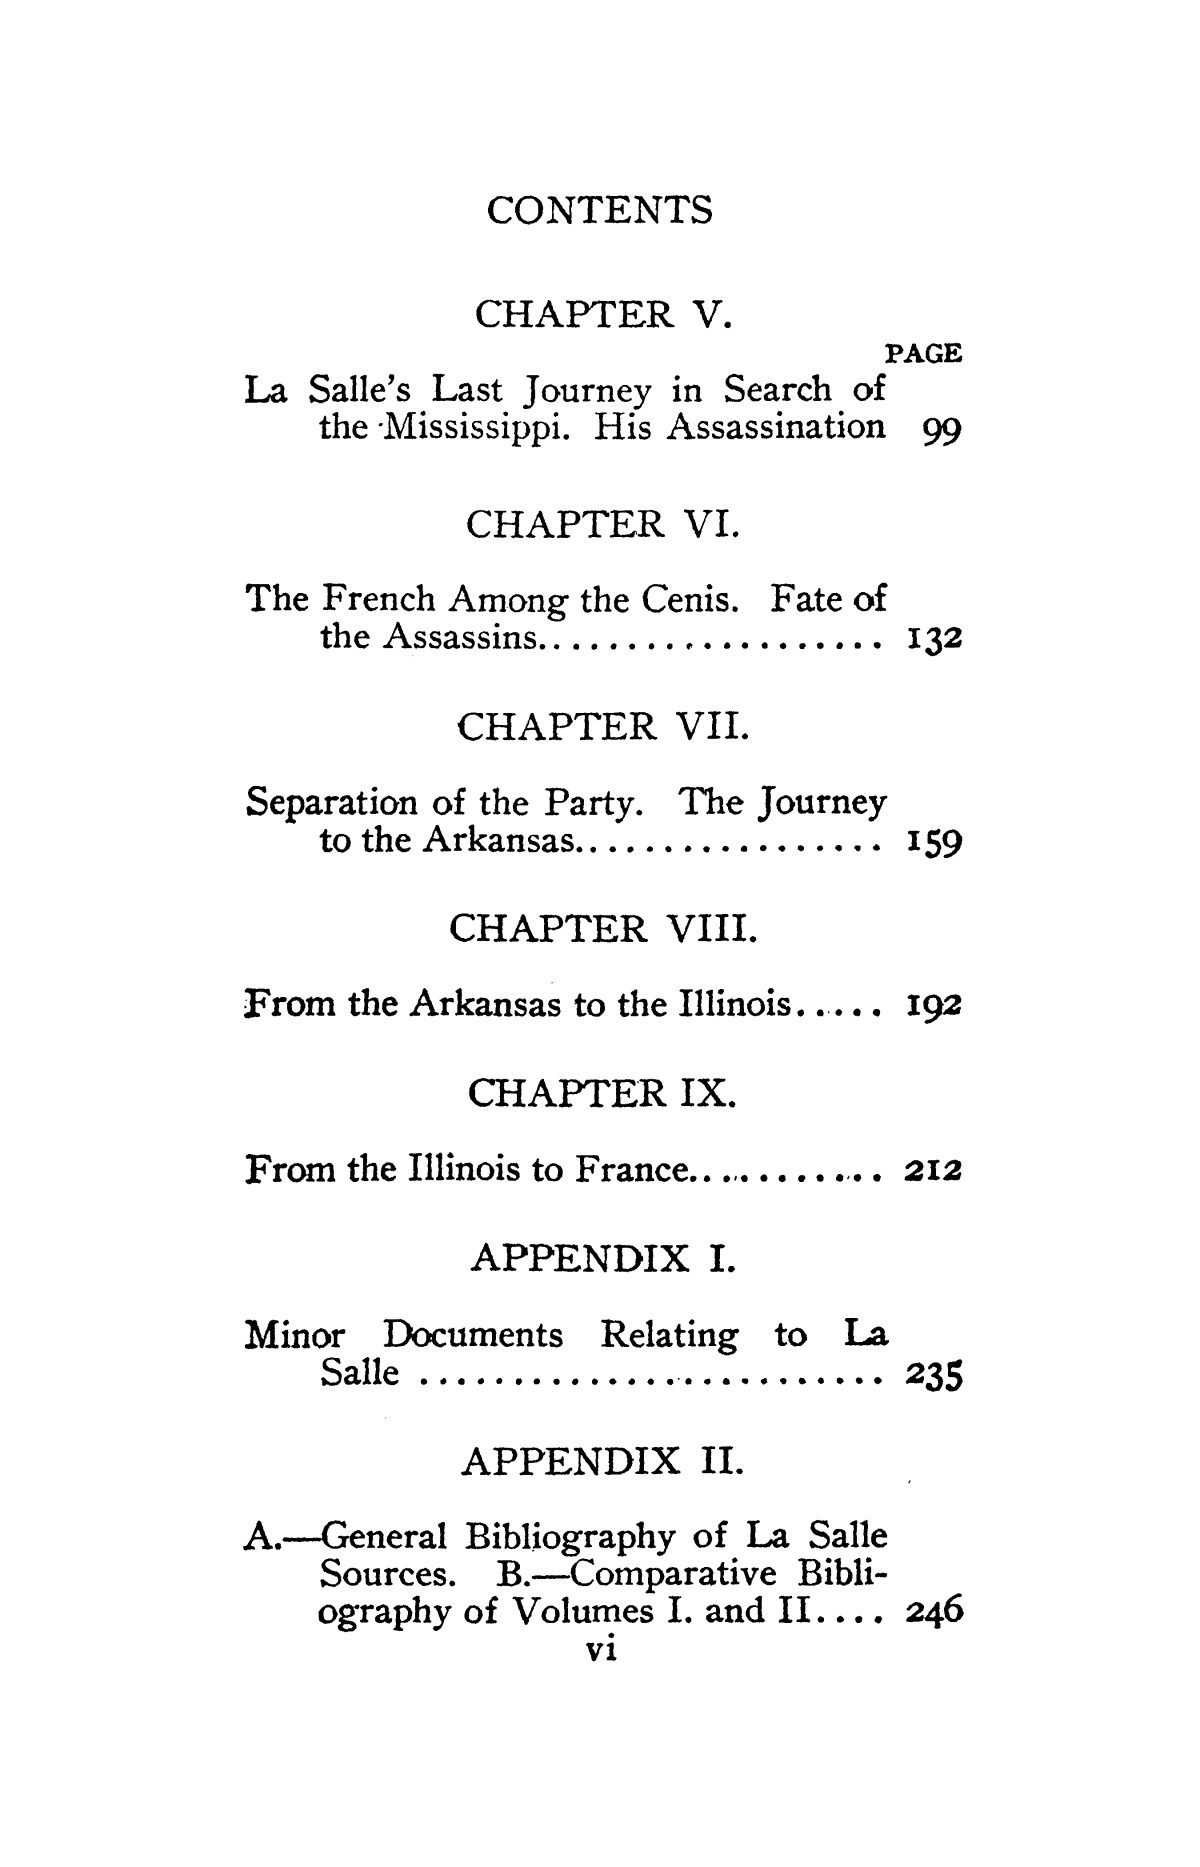 The Journeys of Rene Robert Cavelier, Sieur de La Salle, Volume 2                                                                                                      [Sequence #]: 7 of 268